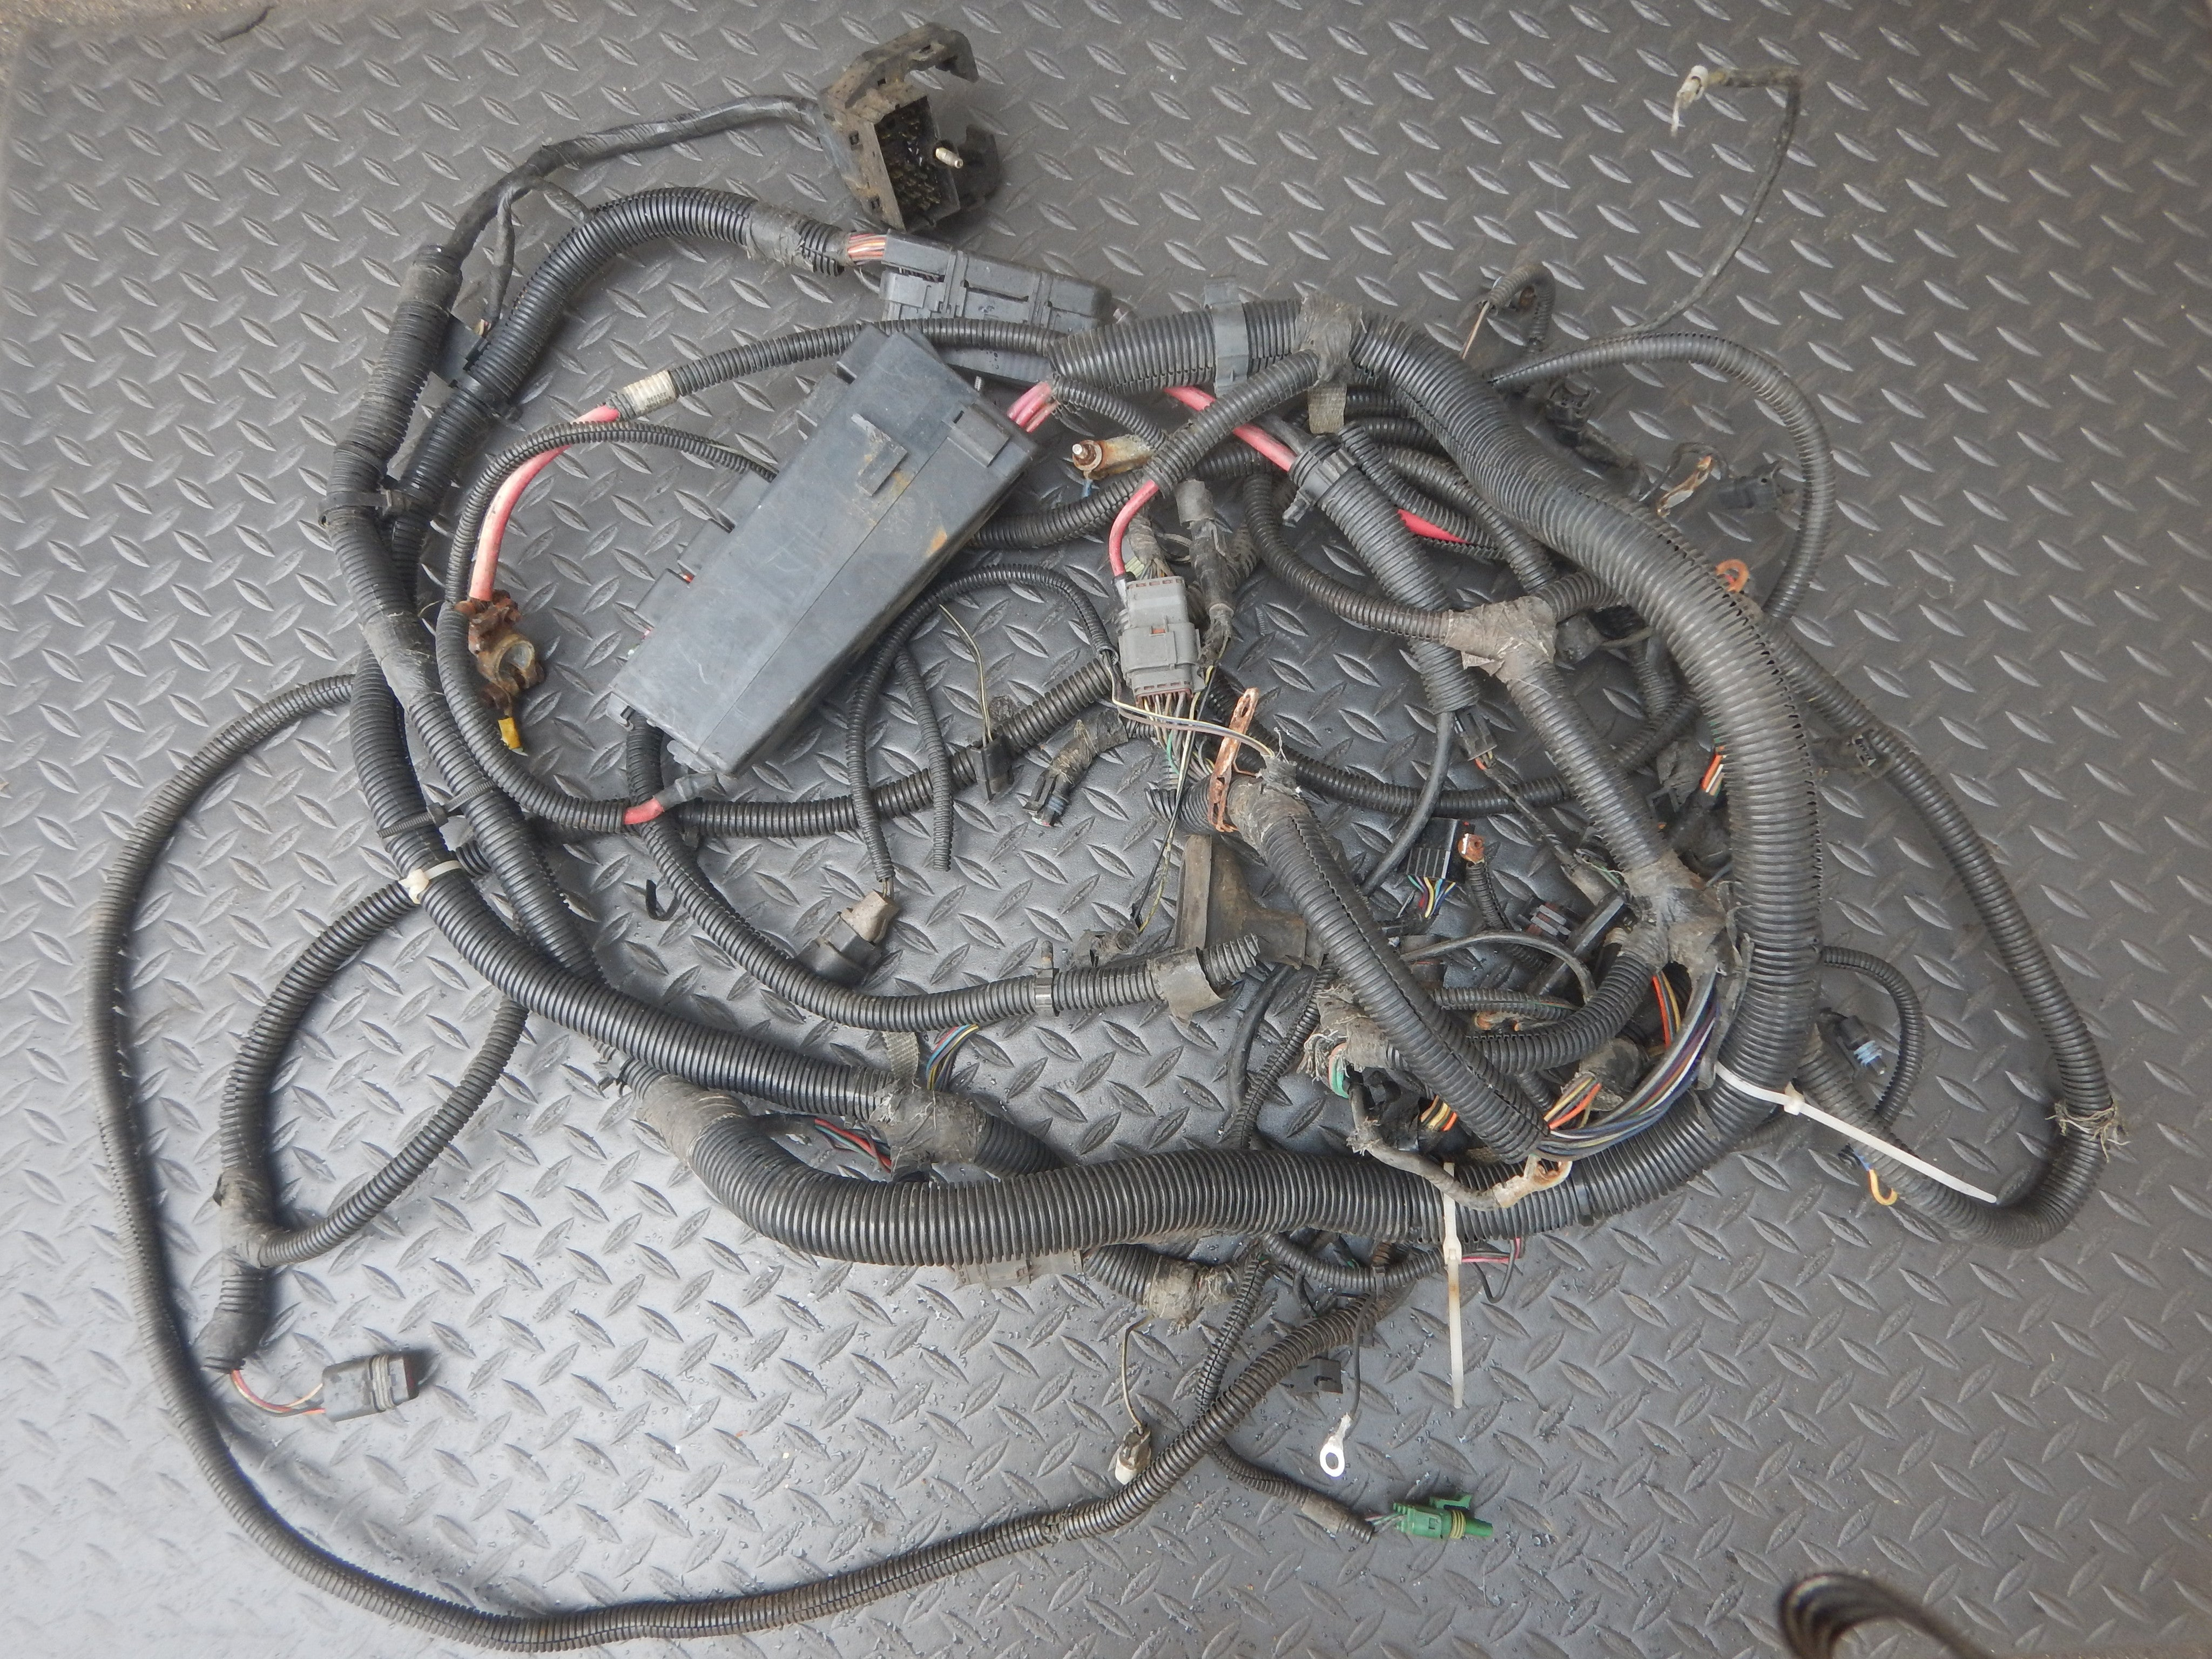 95 Jeep Wiring Harness Diagram - Wiring Diagram Perfomance Jeep Cherokee Wiring Harness on